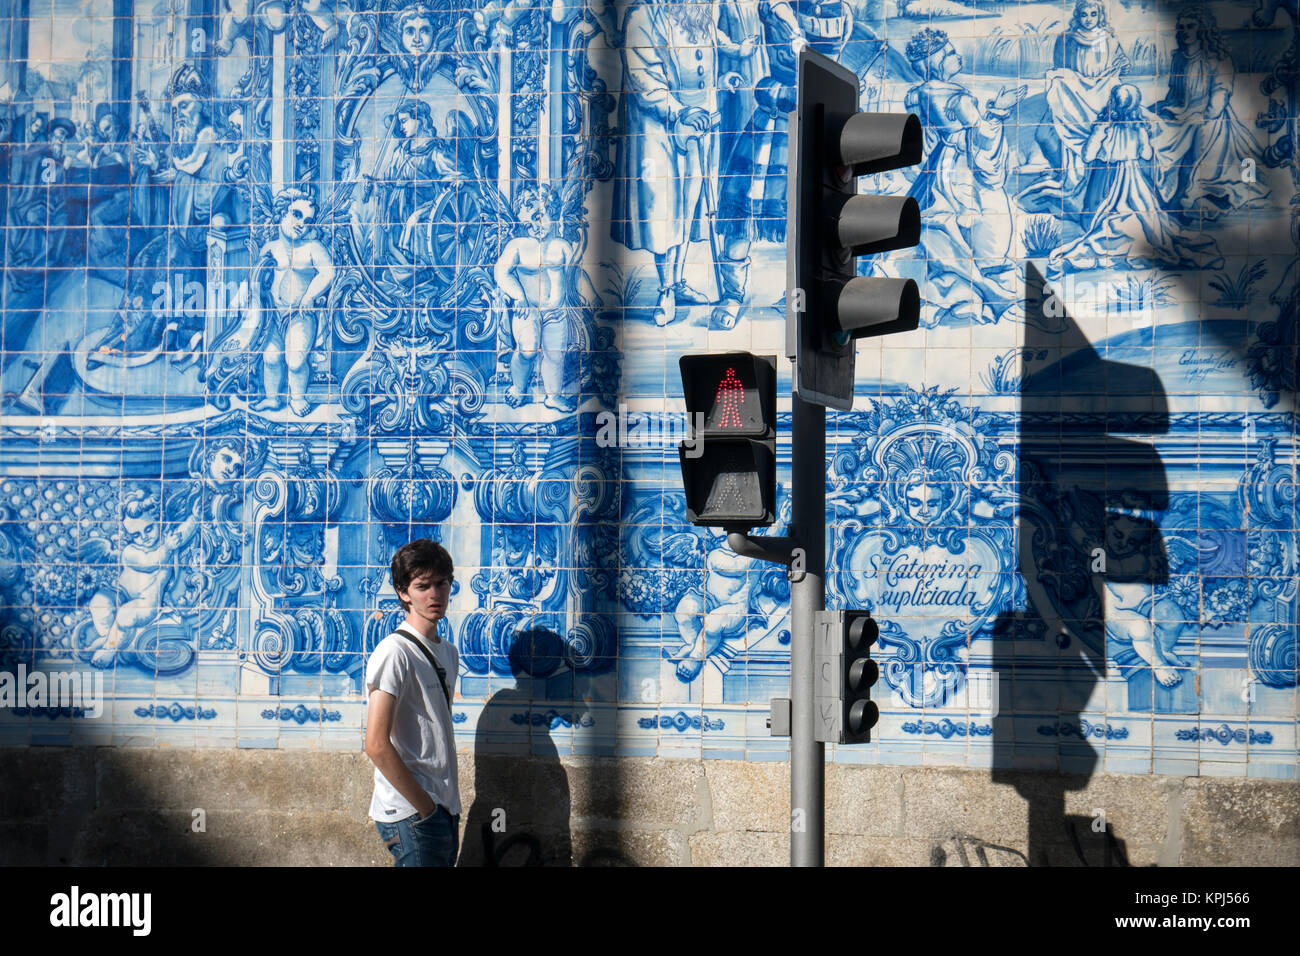 Traditional, blue glazed, dececorated tiles, azulejos,on the exterior of Capela das Almas church, in the centre - Stock Image